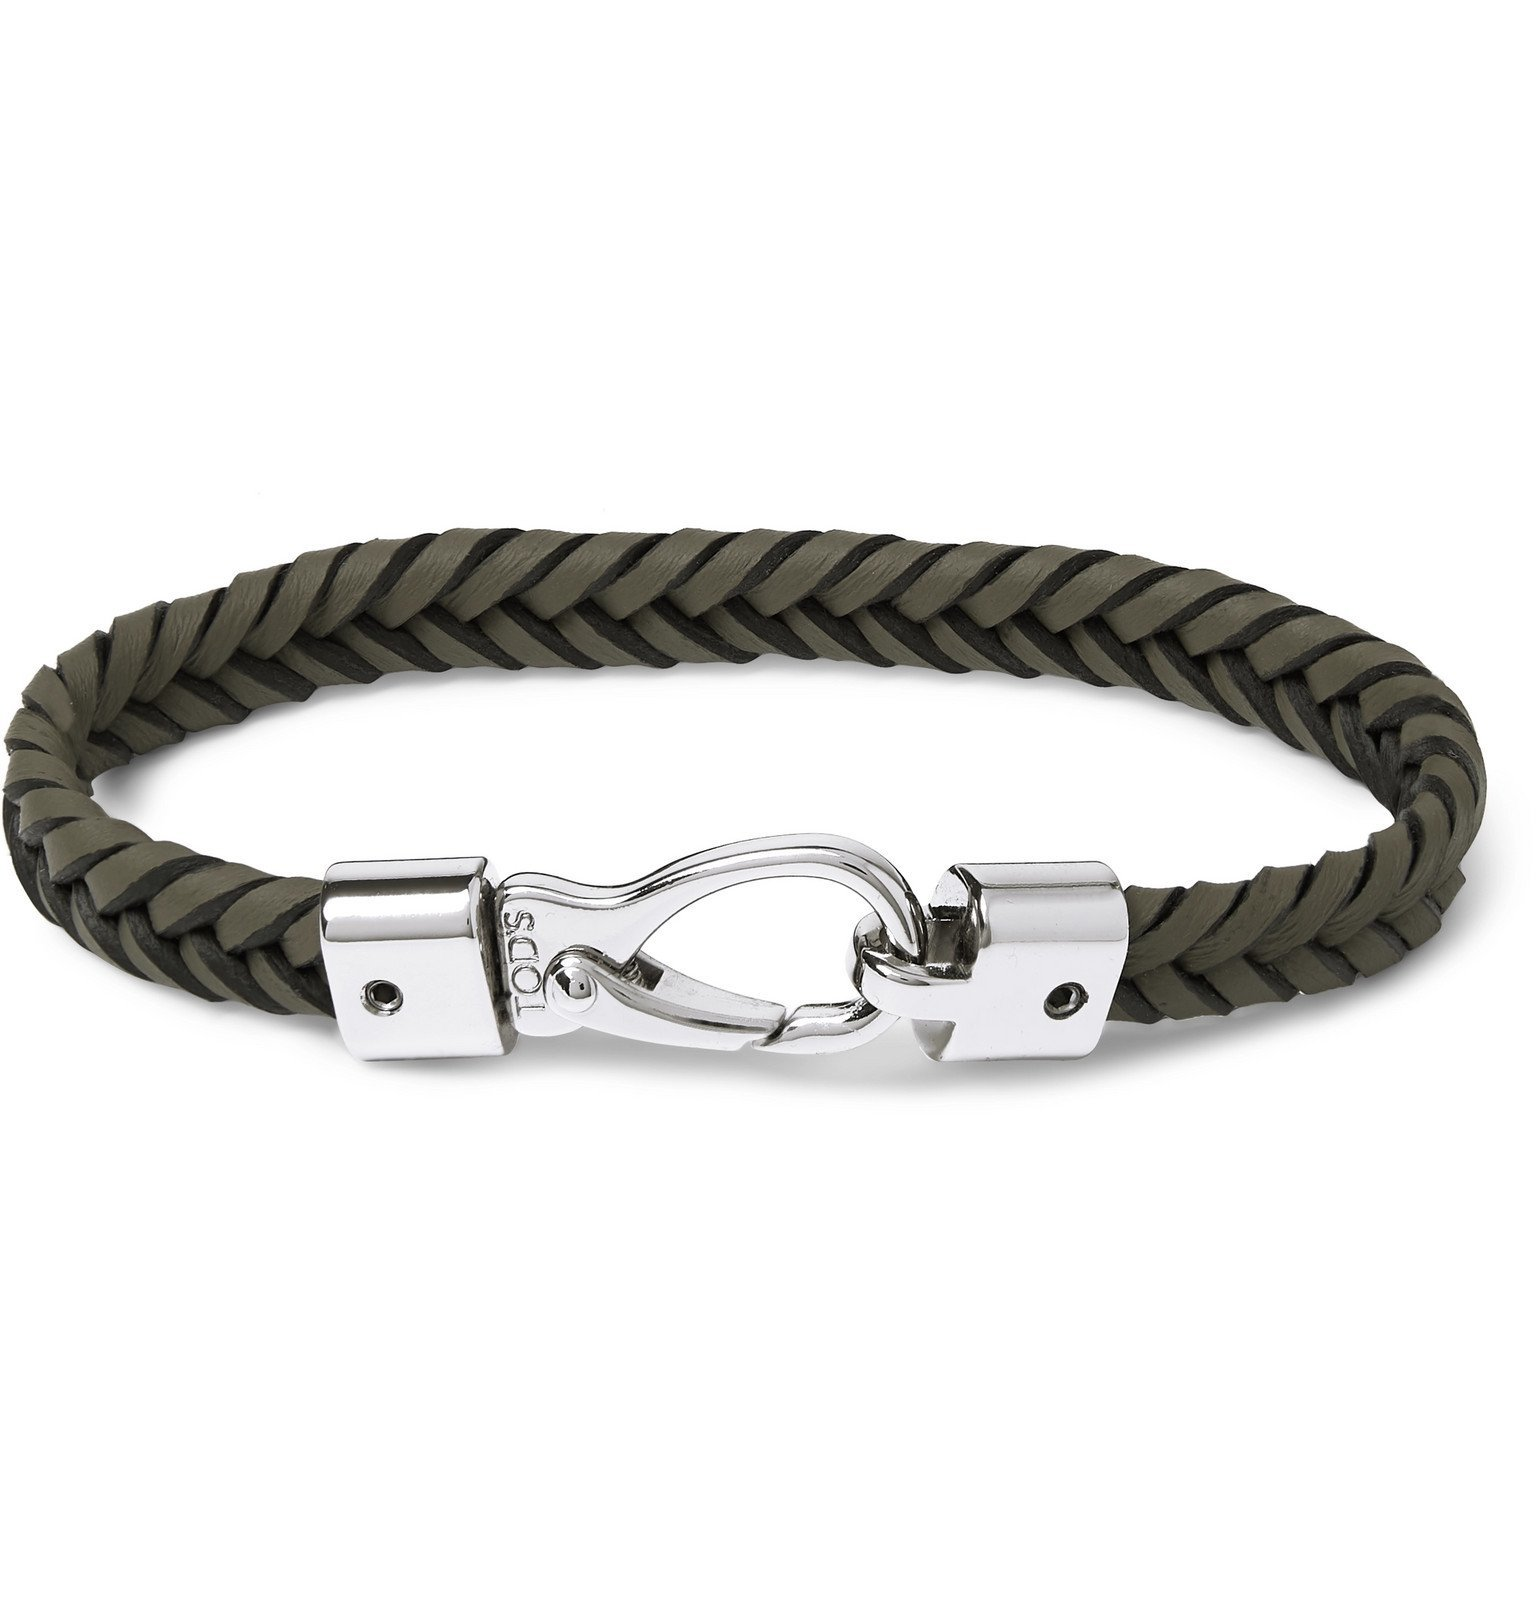 Tod's - Woven Leather and Silver-Tone Bracelet - Green